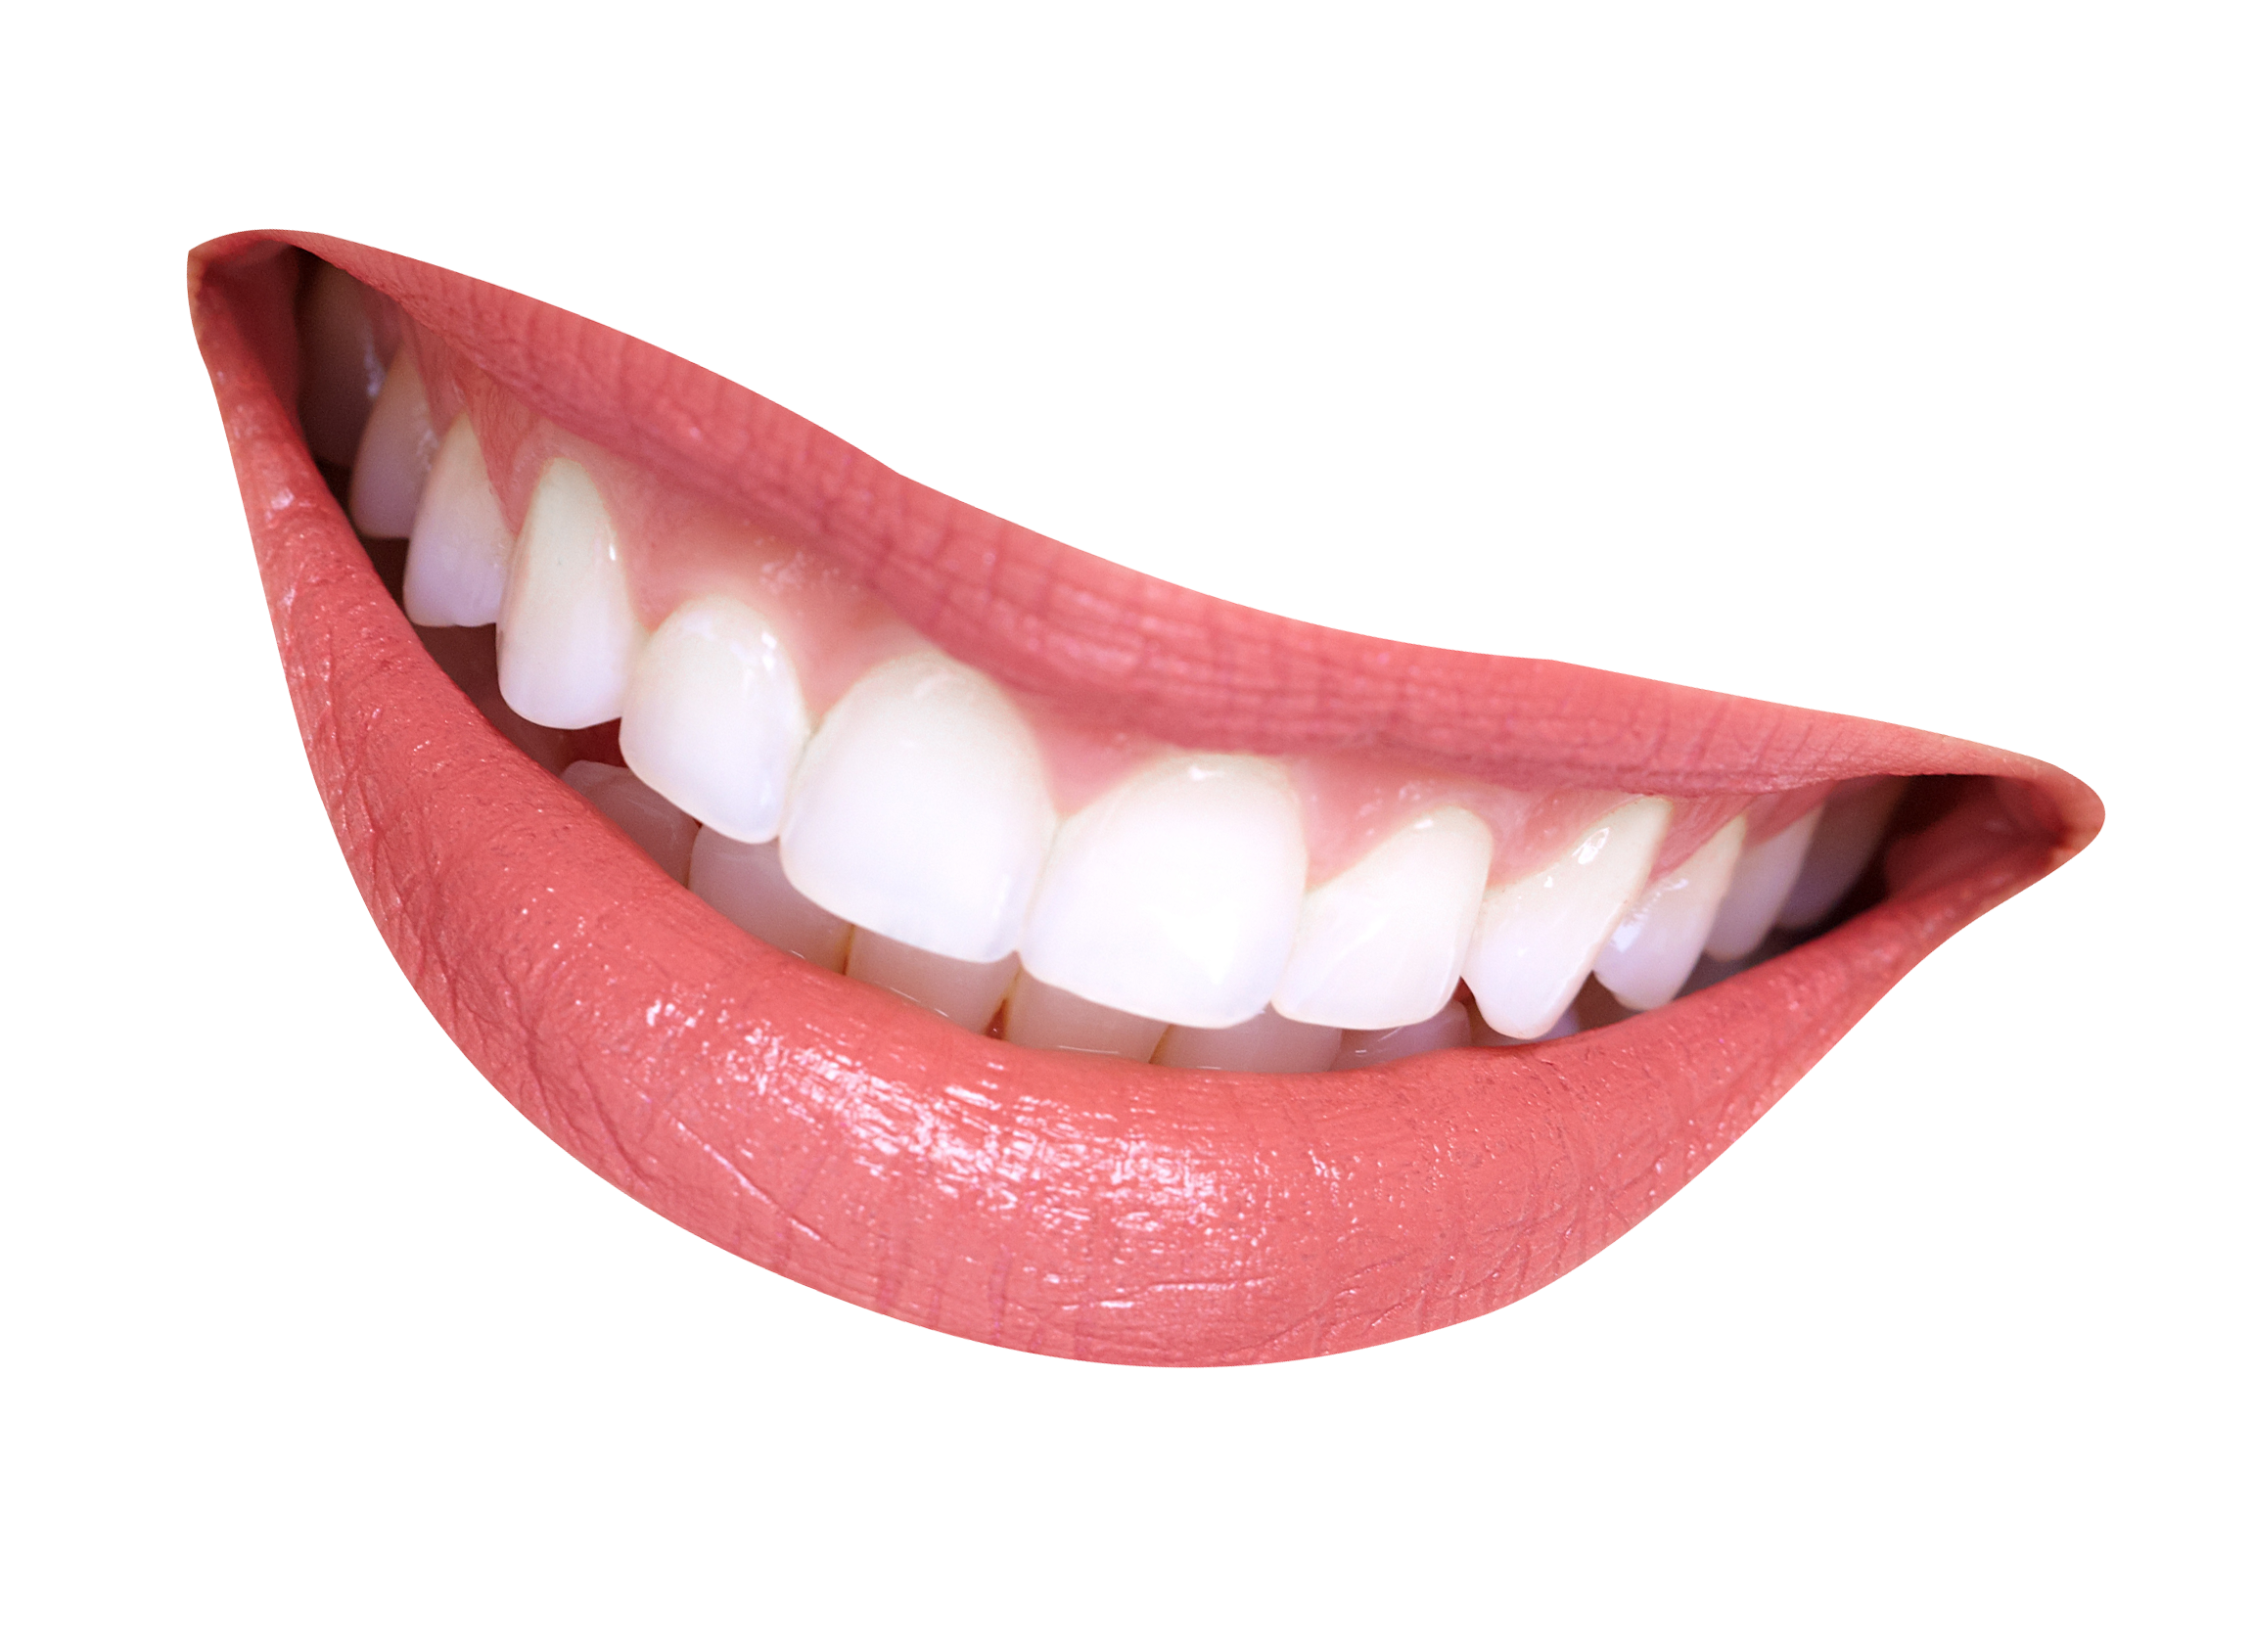 Mouth Smile Png Image Mouth Smile Png Photo